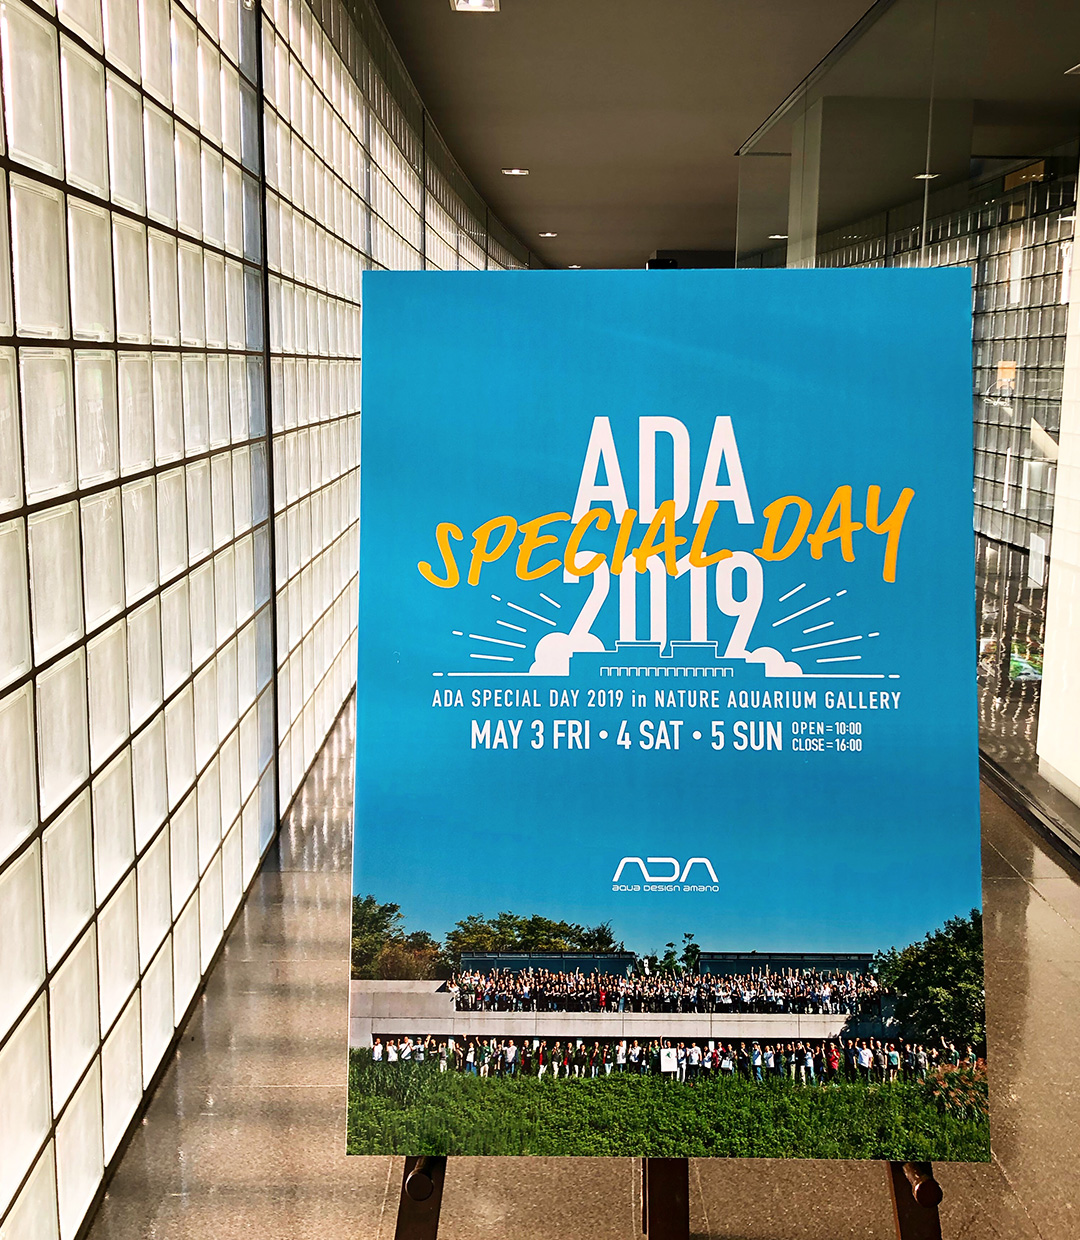 ADA SPECIAL DAY 2019 REPORT